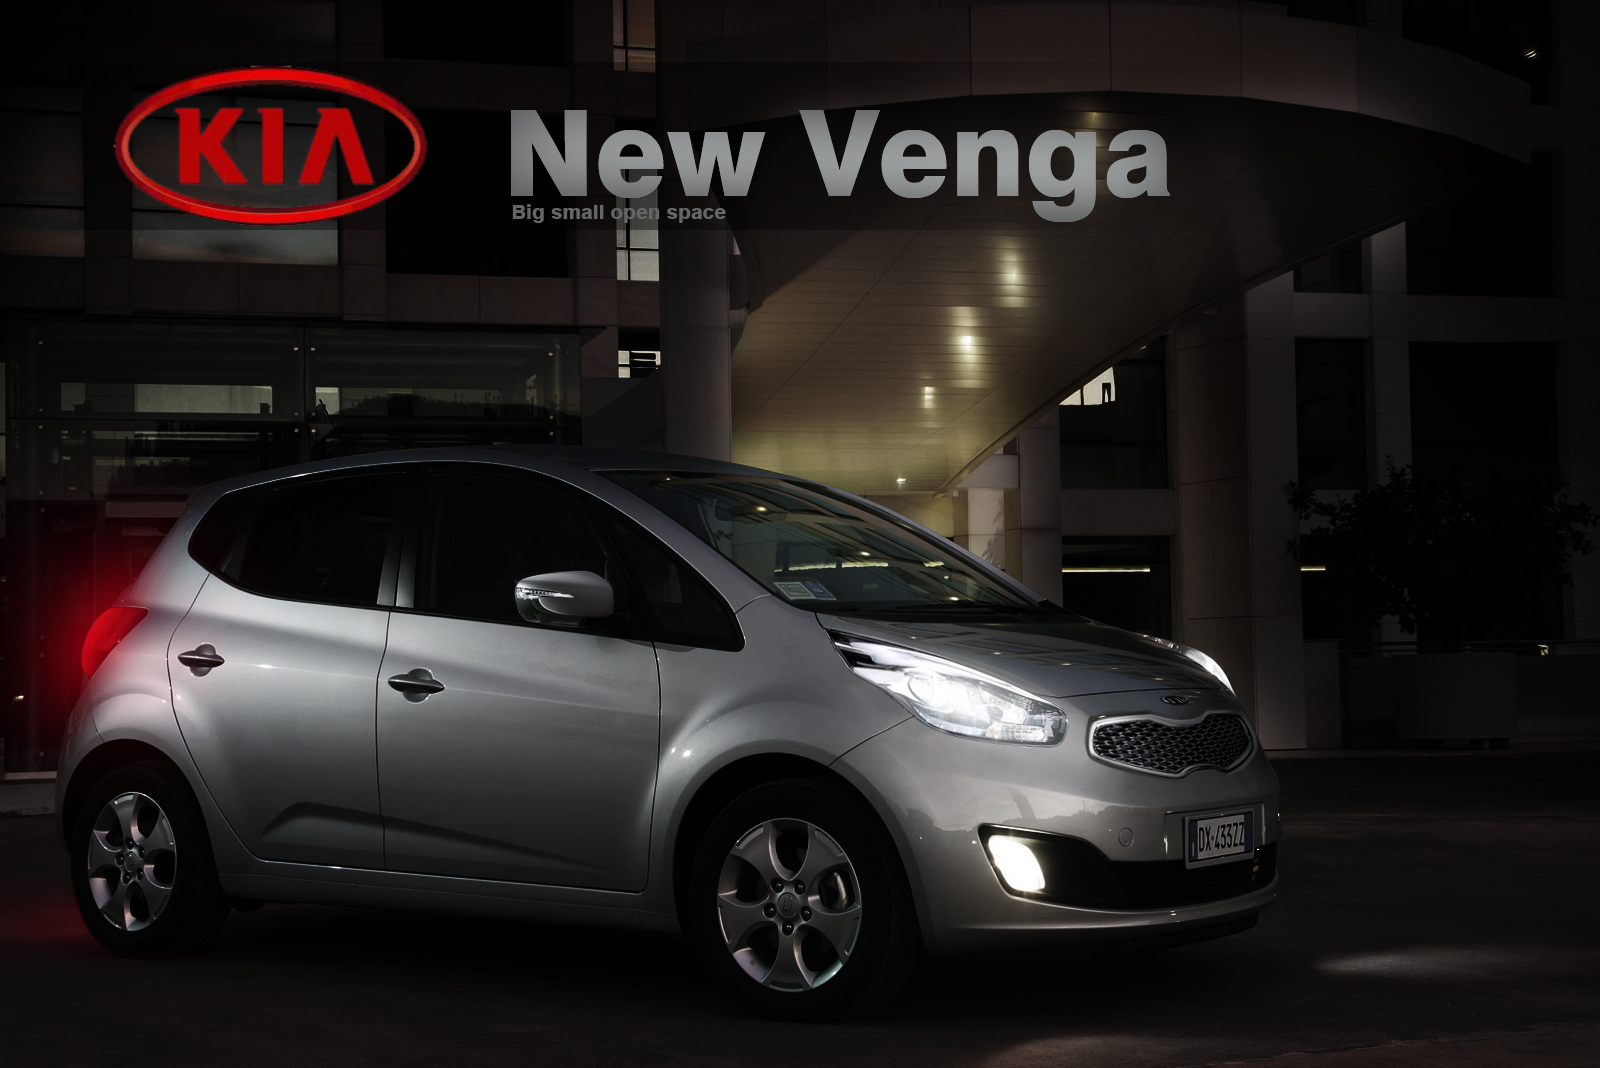 2013 kia venga pictures information and specs auto. Black Bedroom Furniture Sets. Home Design Ideas